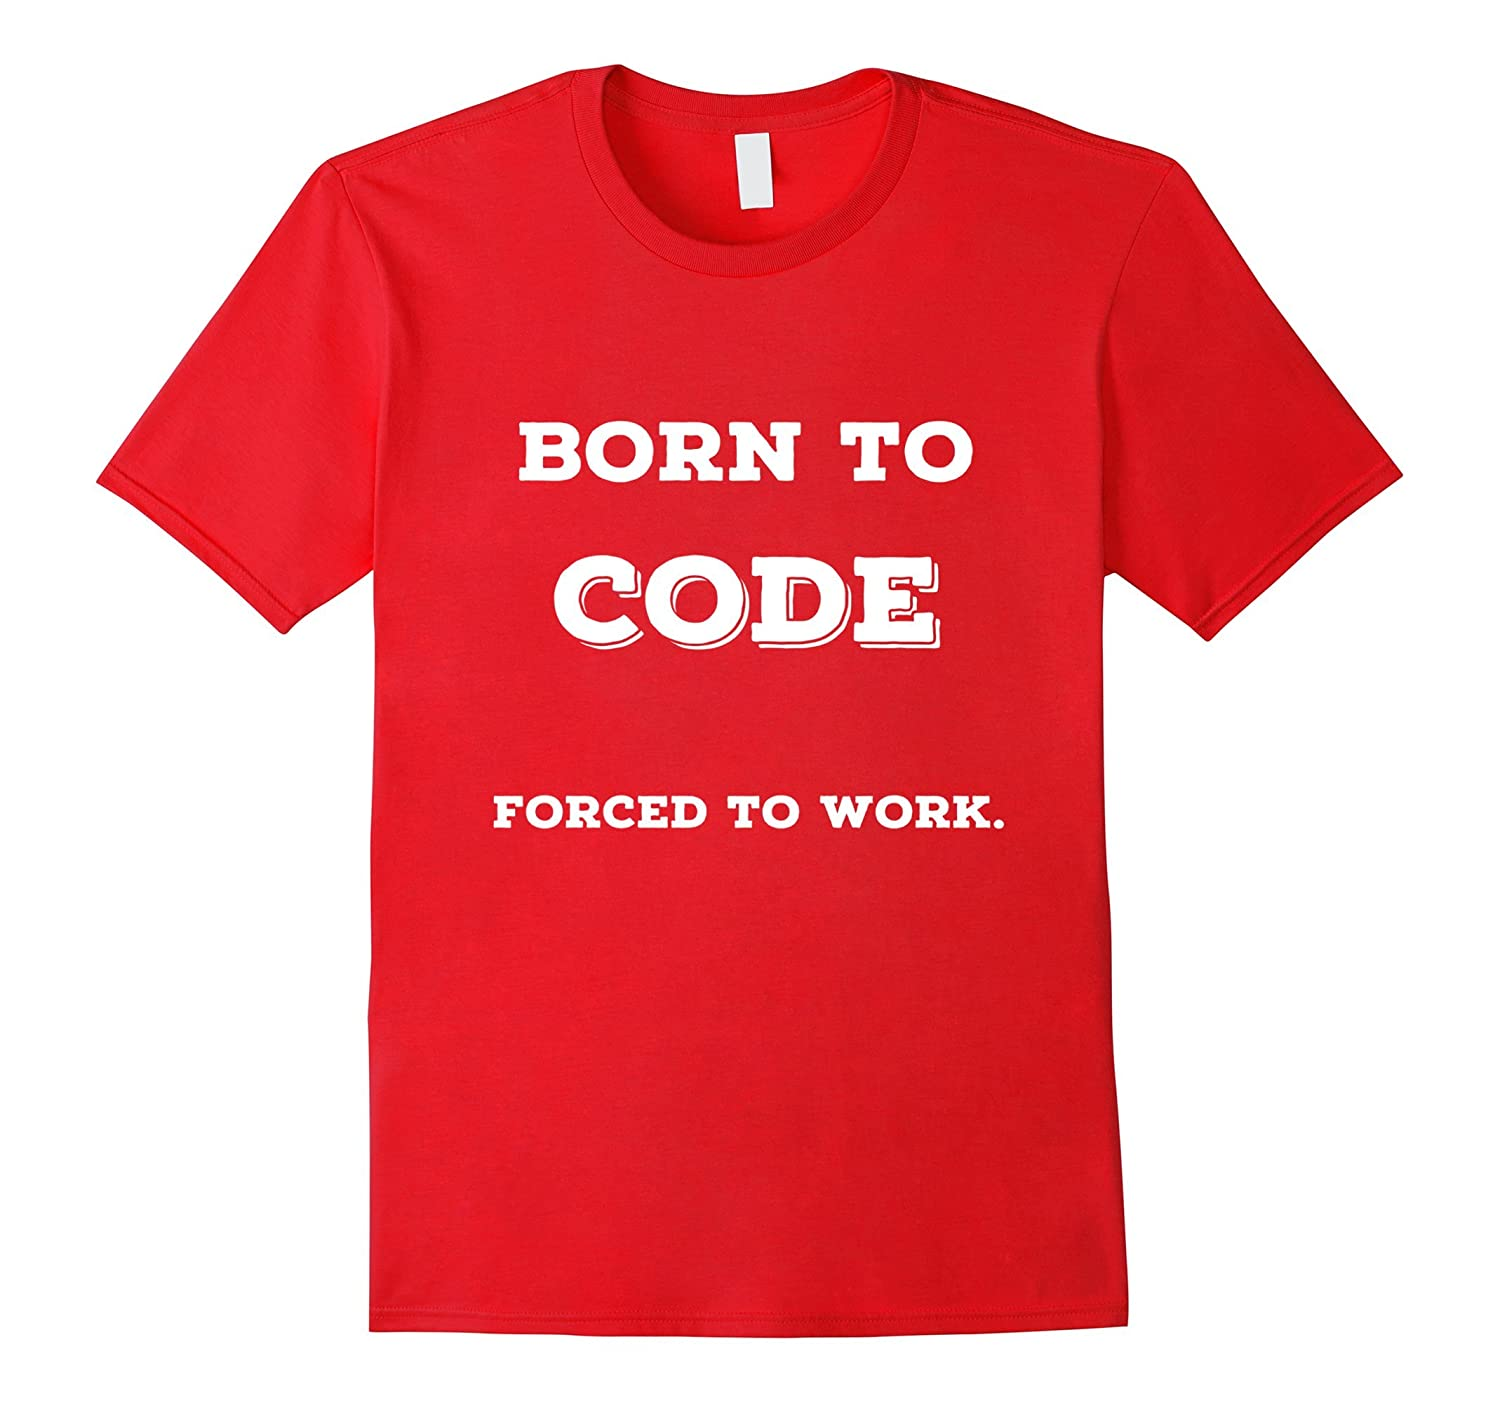 Funny Cool Coding T Shirts. Best Gifts for Coders.-Teevkd